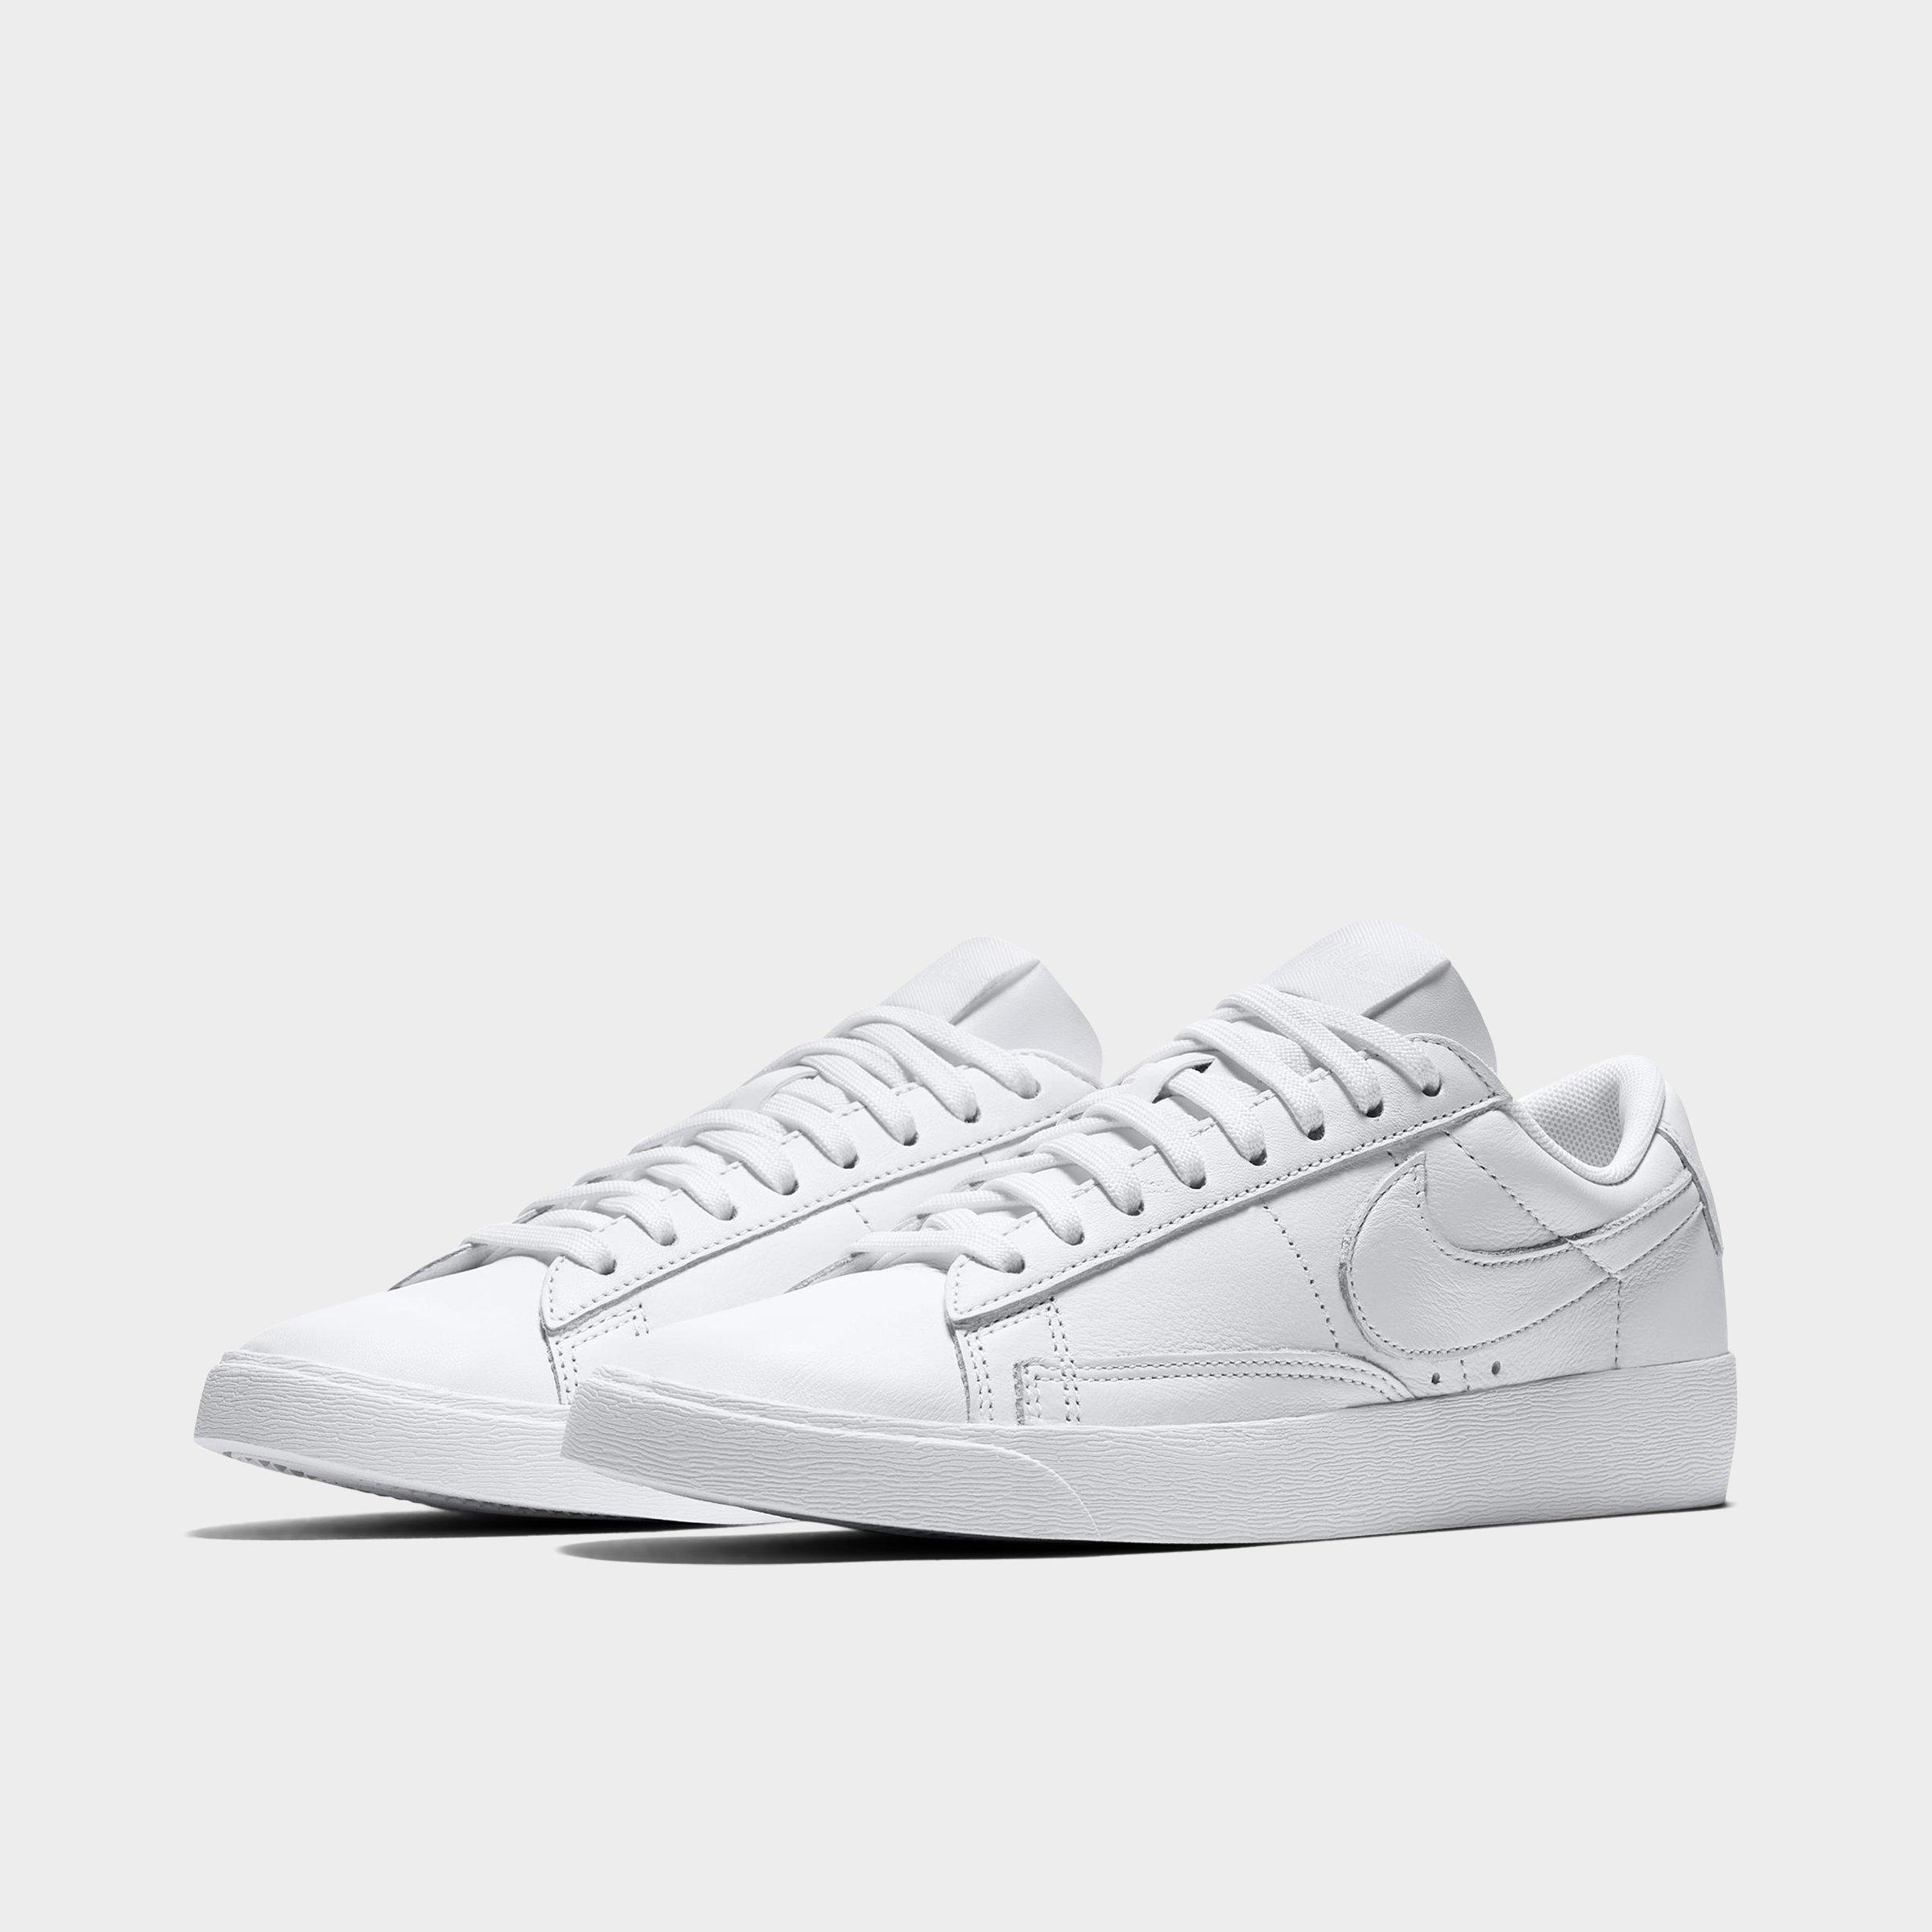 Collar Sostener Patético  nike blazer low womens white and black Shop Nike Clothing & Shoes Online |  Free Shipping & Returns